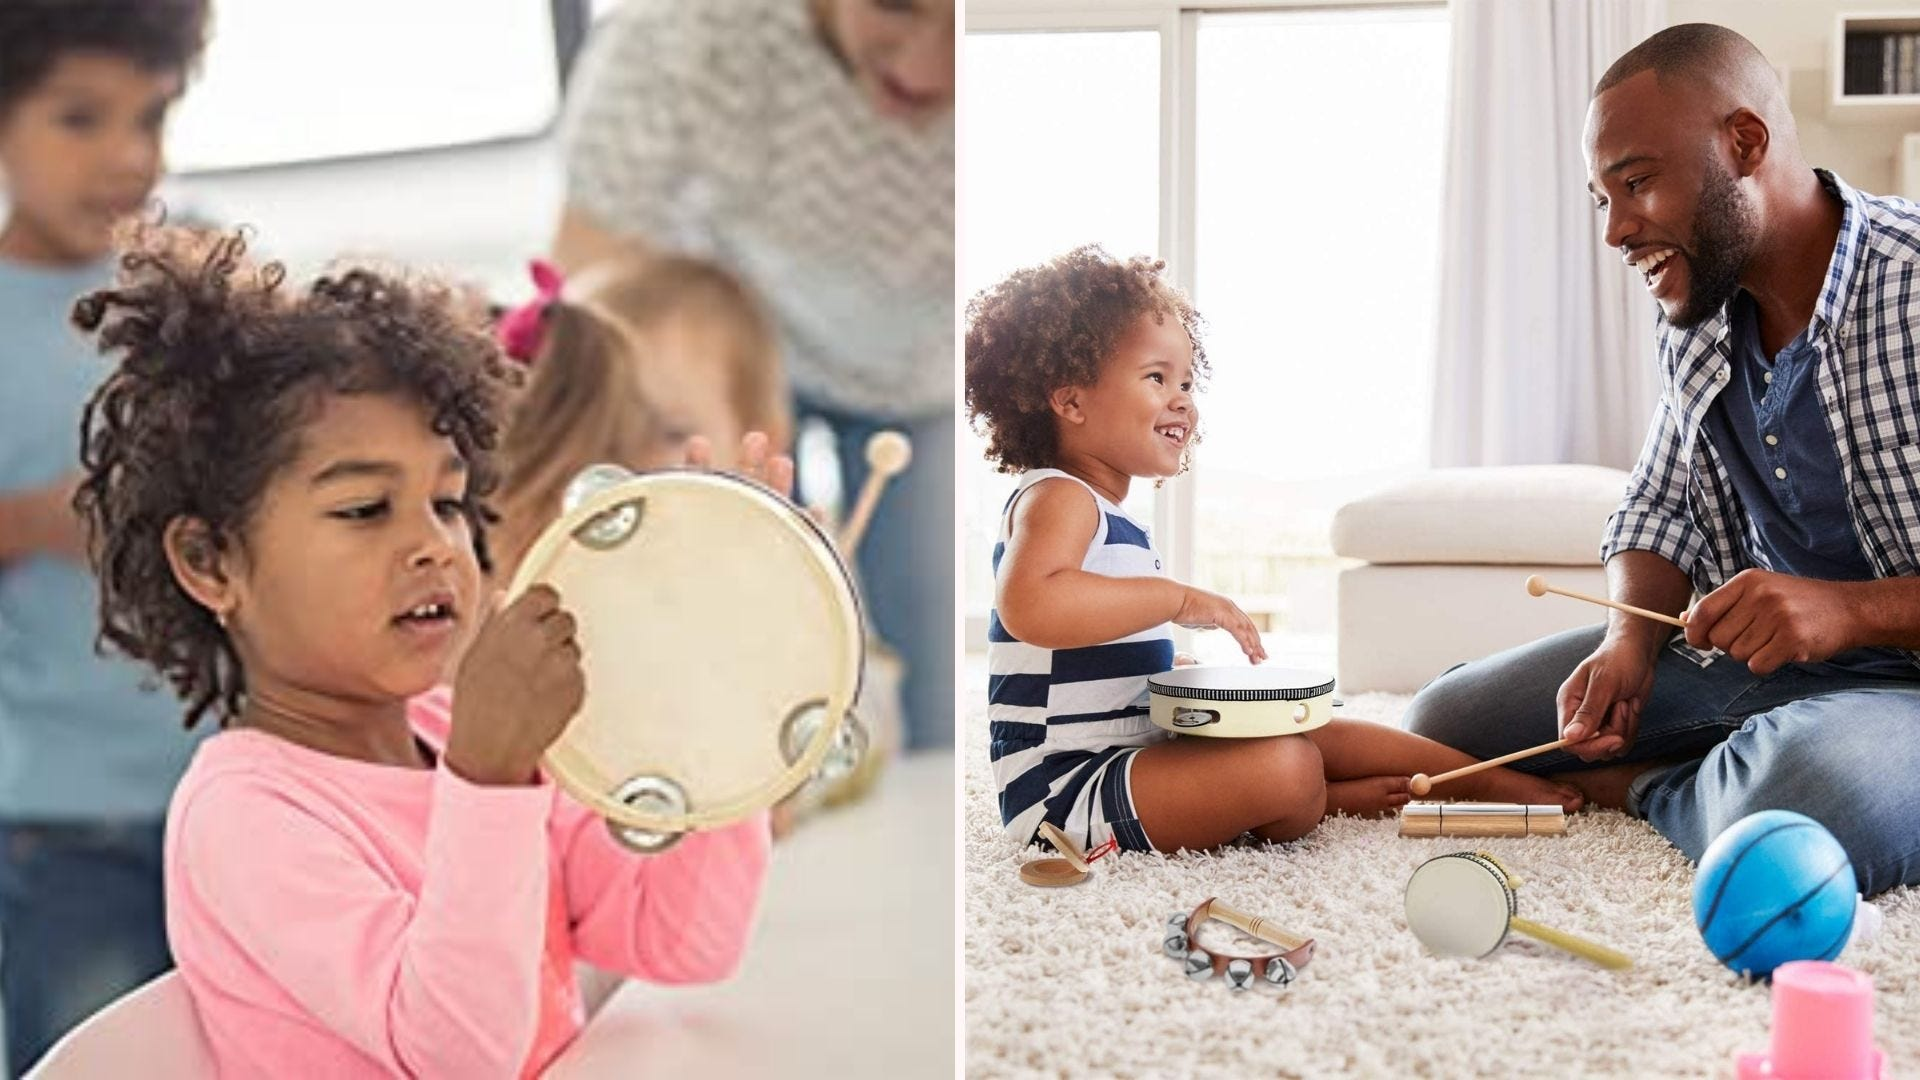 Two images: The left image is of a young girl looking at a tambourine, and the right image is of a young girl playing musical instruments on the floor with her father.